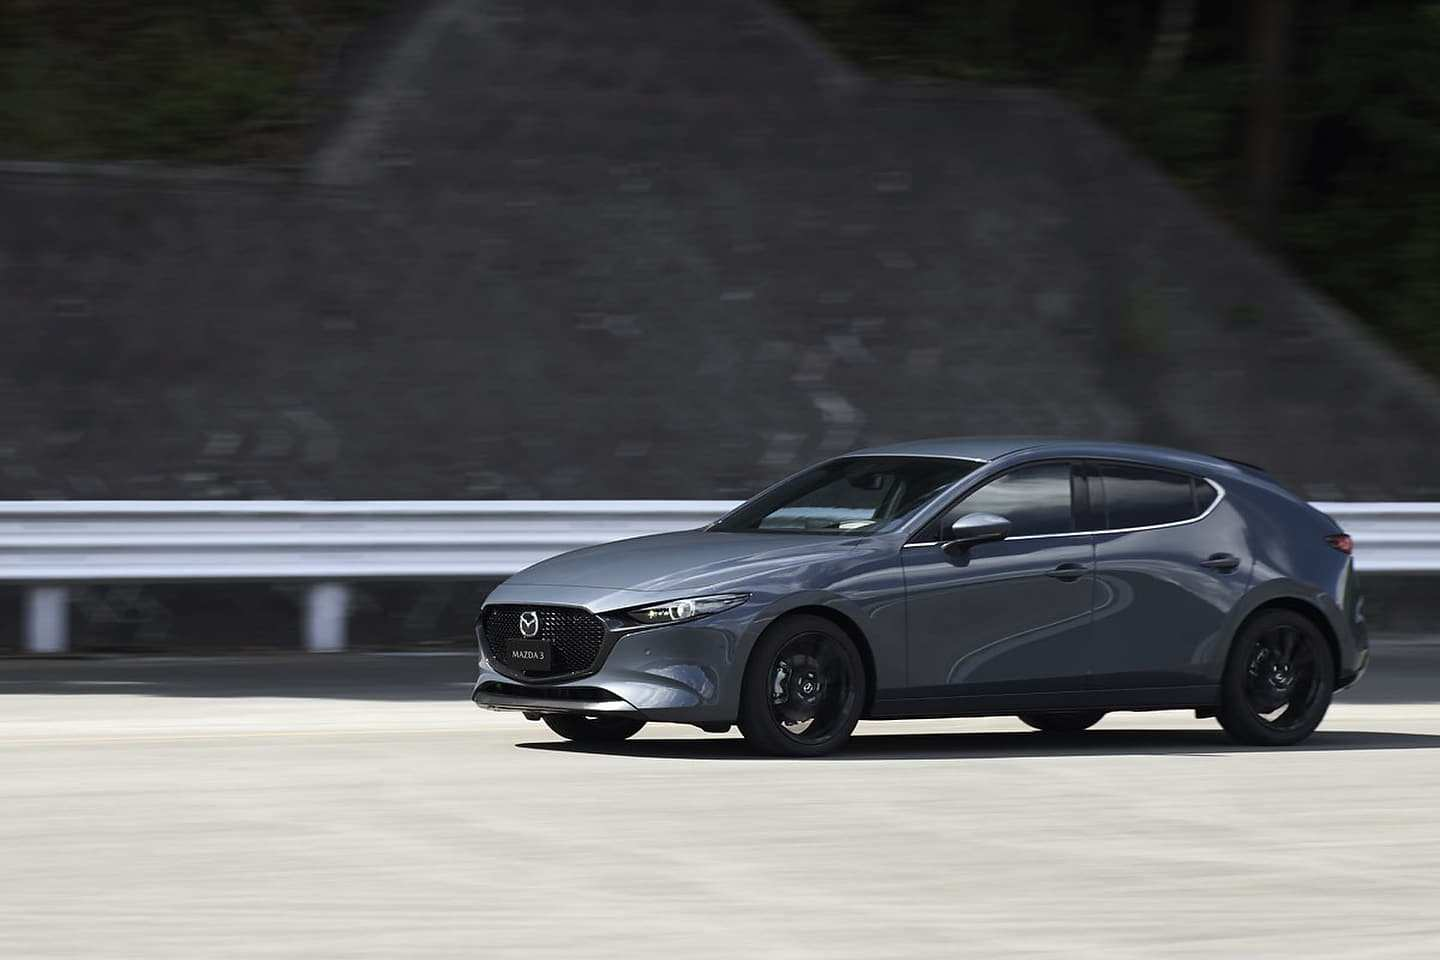 22 New 2020 Corolla Vs 2019 Mazda 3 Concept